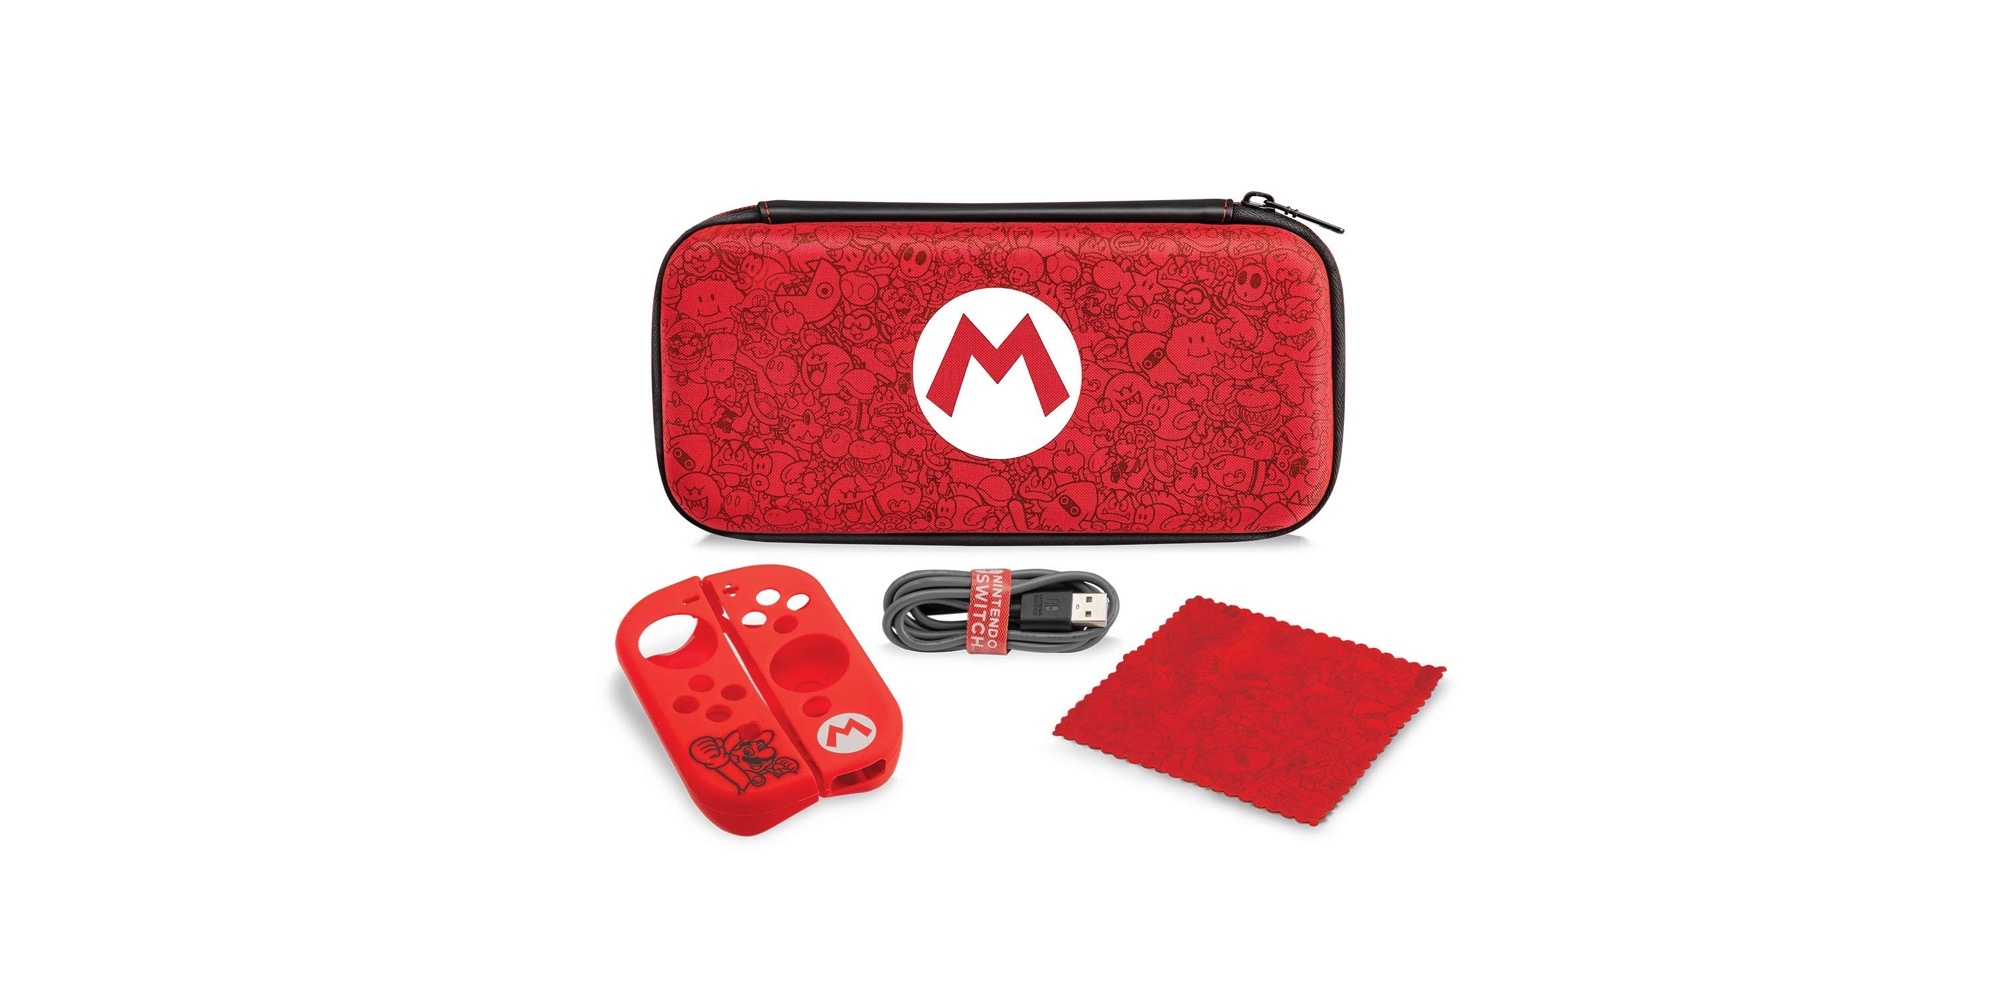 Deck out a Nintendo Switch with PDP's Mario Remix Starter Kit: $18 (30% off)